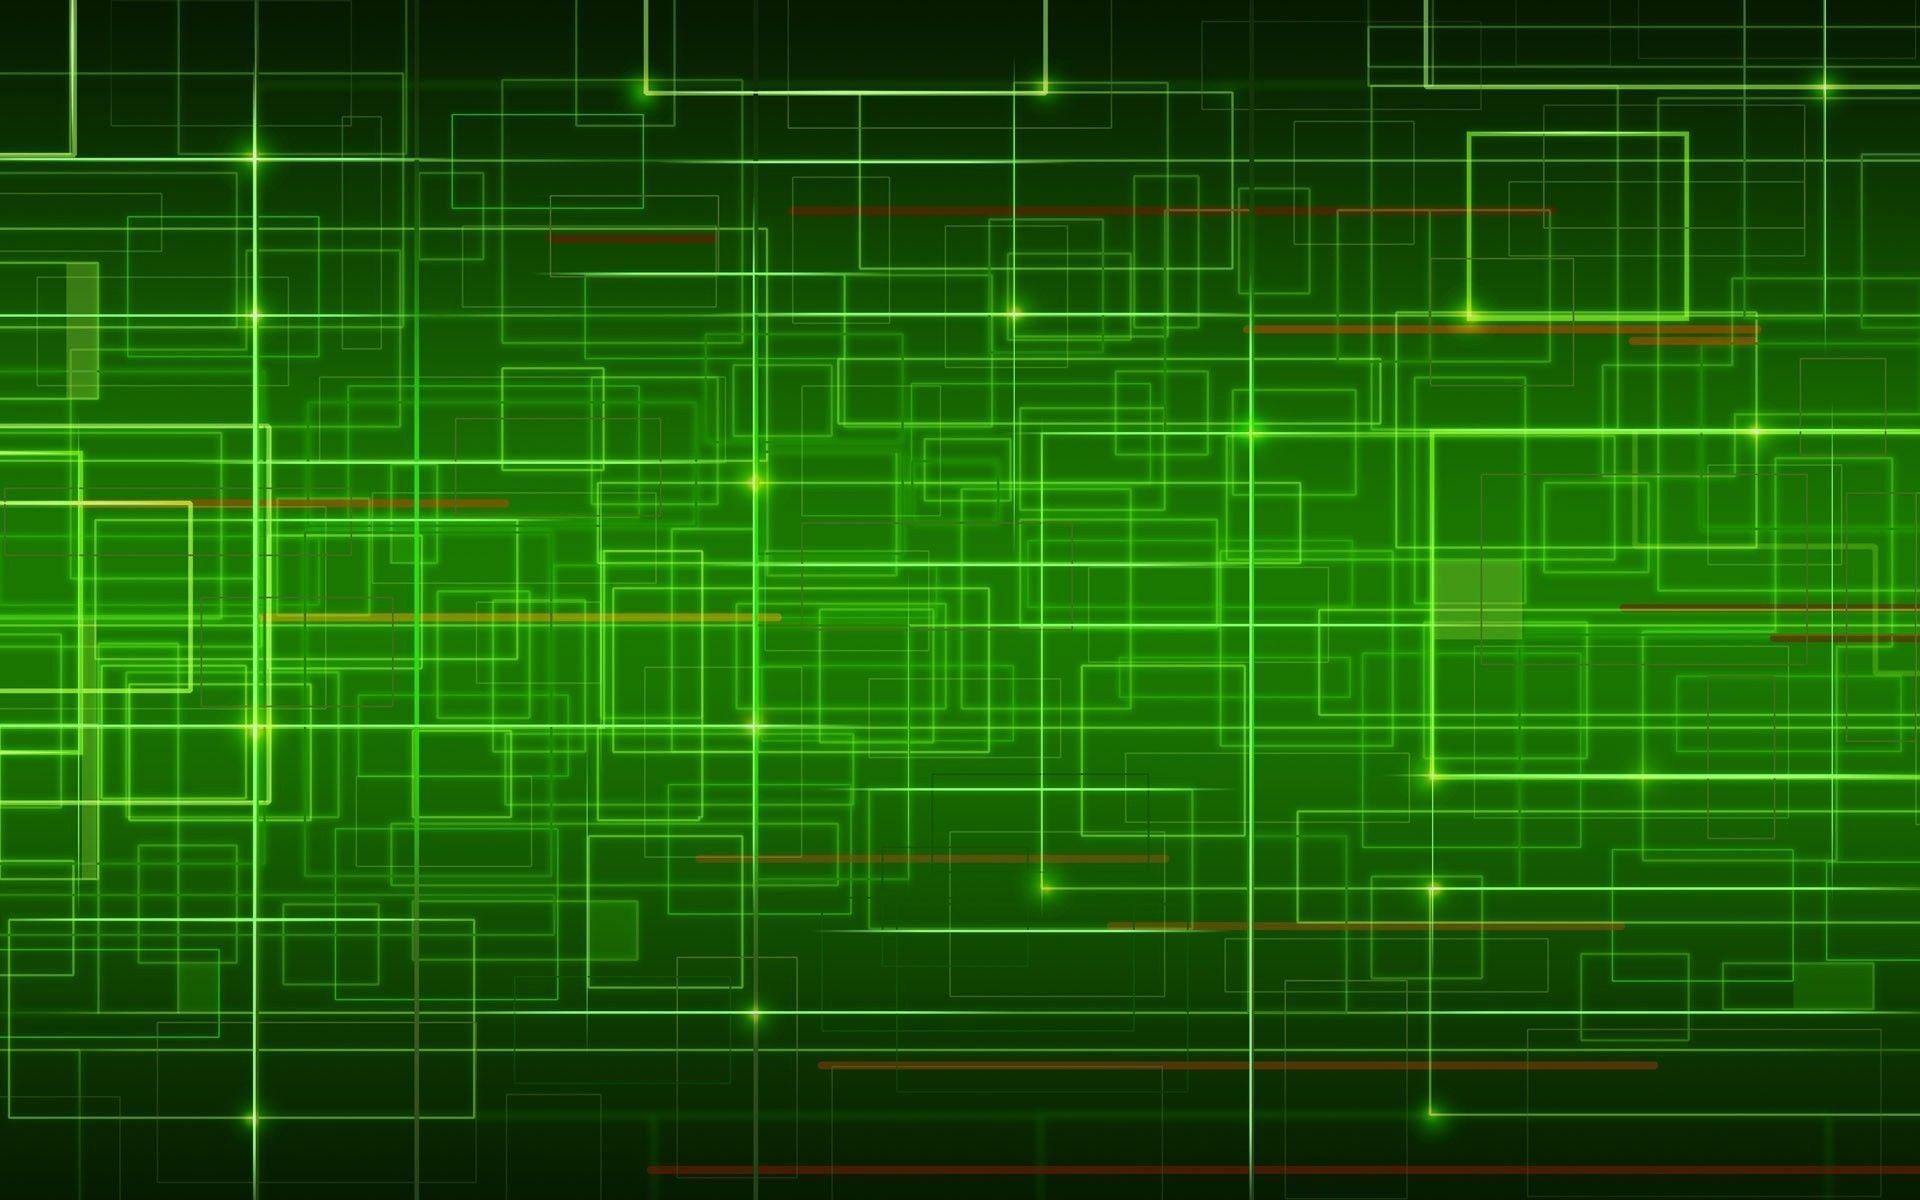 green neon background - photo #23